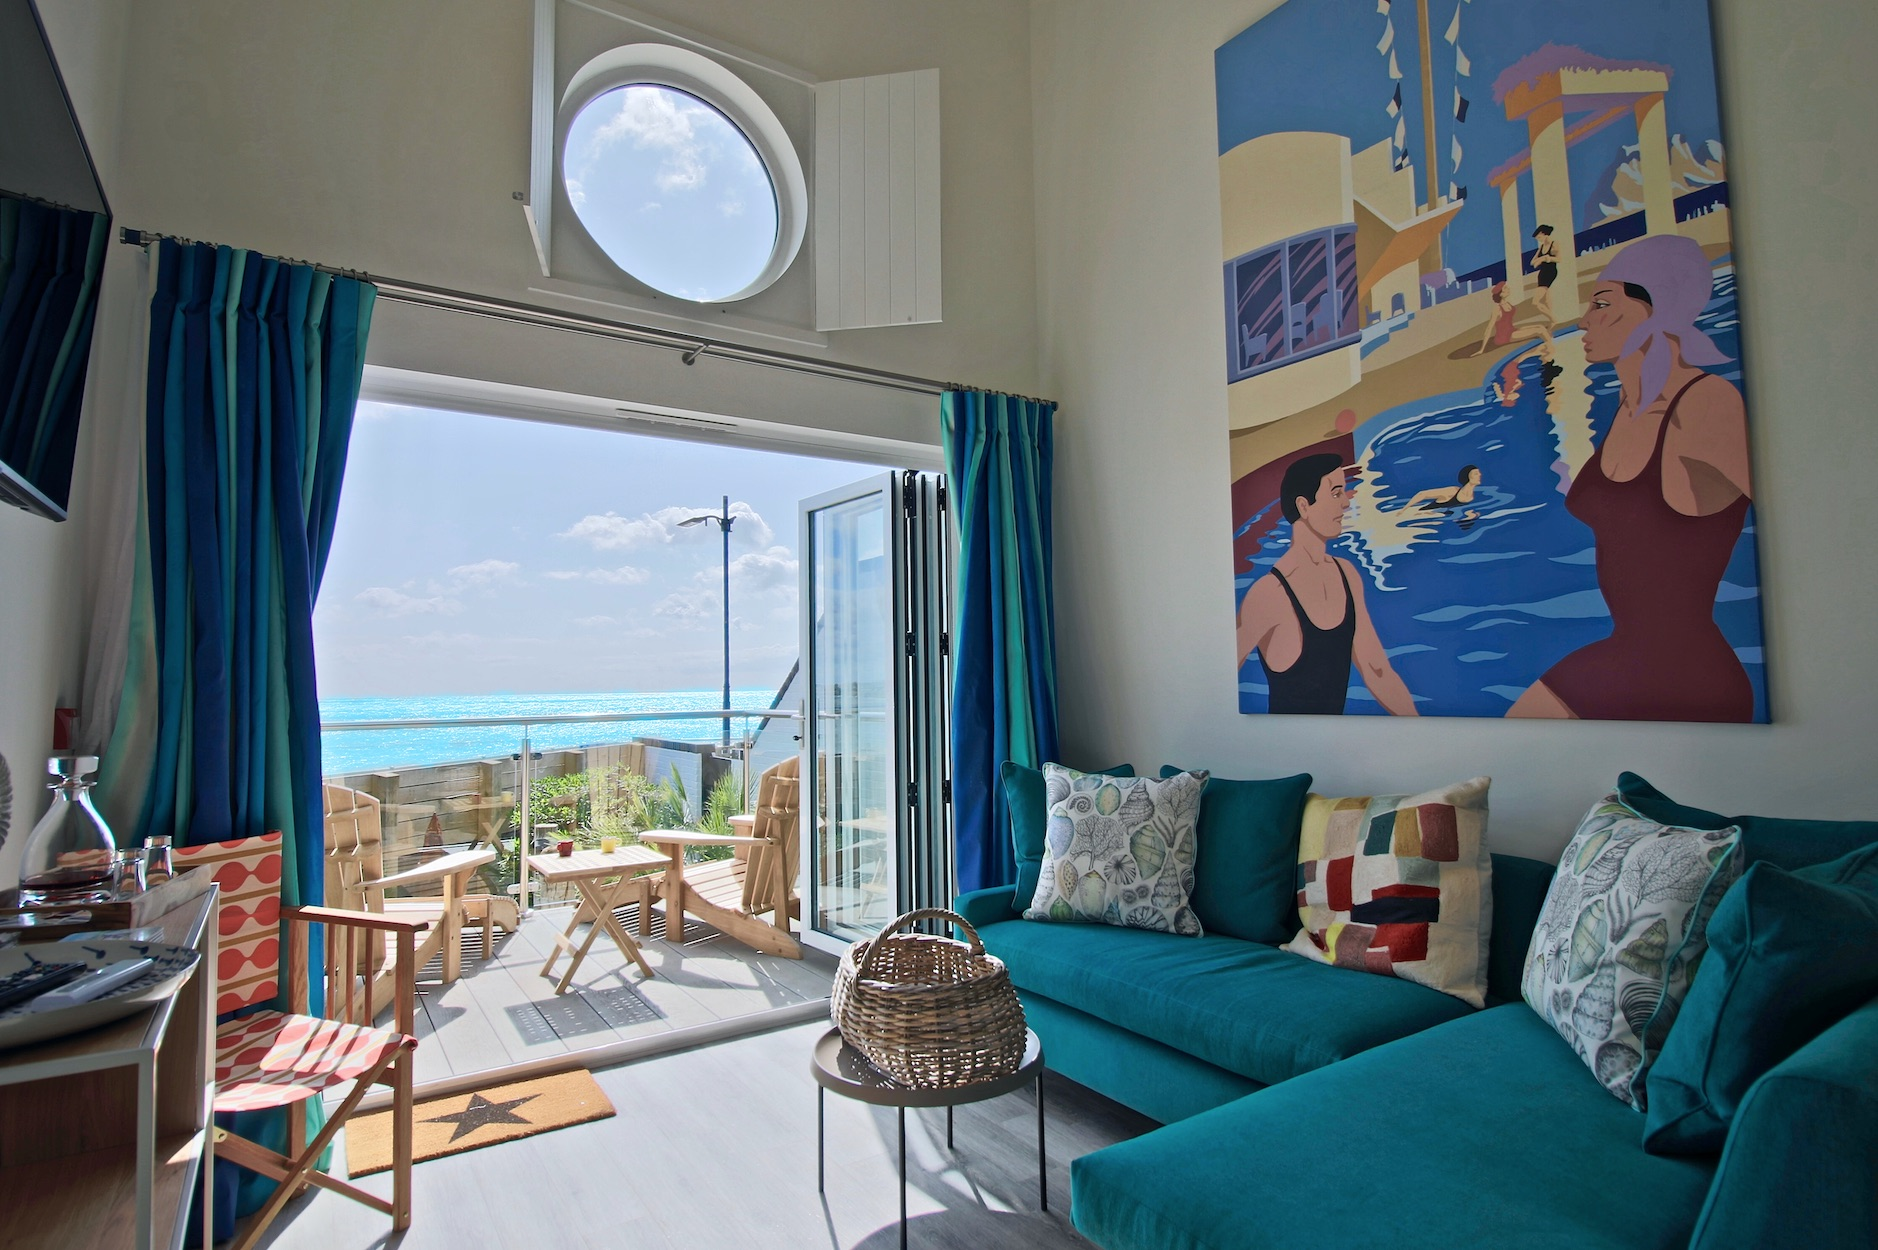 uk-staycations-where-to-tick-off-your-list-beachcroft-beach-huts-west-sussex